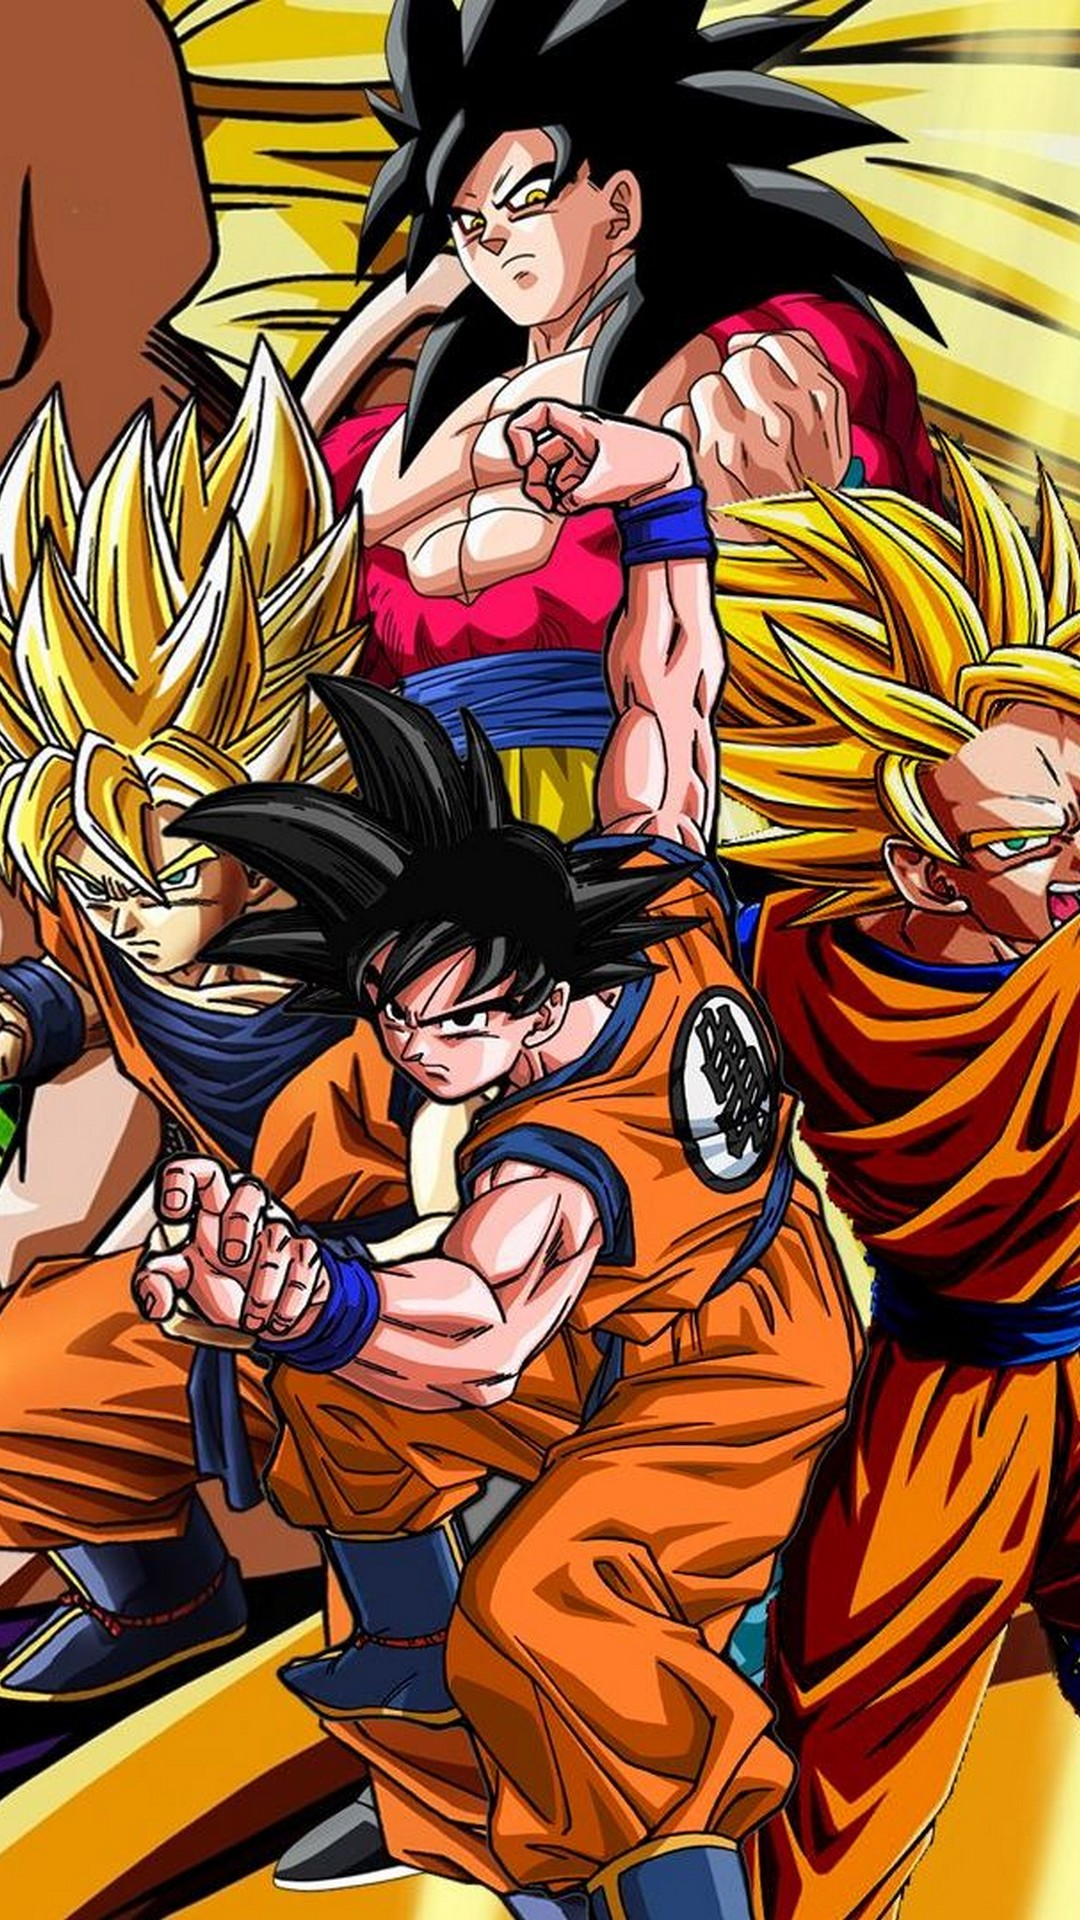 Android Wallpaper Goku Ssj4 With Hd Resolution Goku Ssj4 Wallpaper Hd 1080x1920 Download Hd Wallpaper Wallpapertip